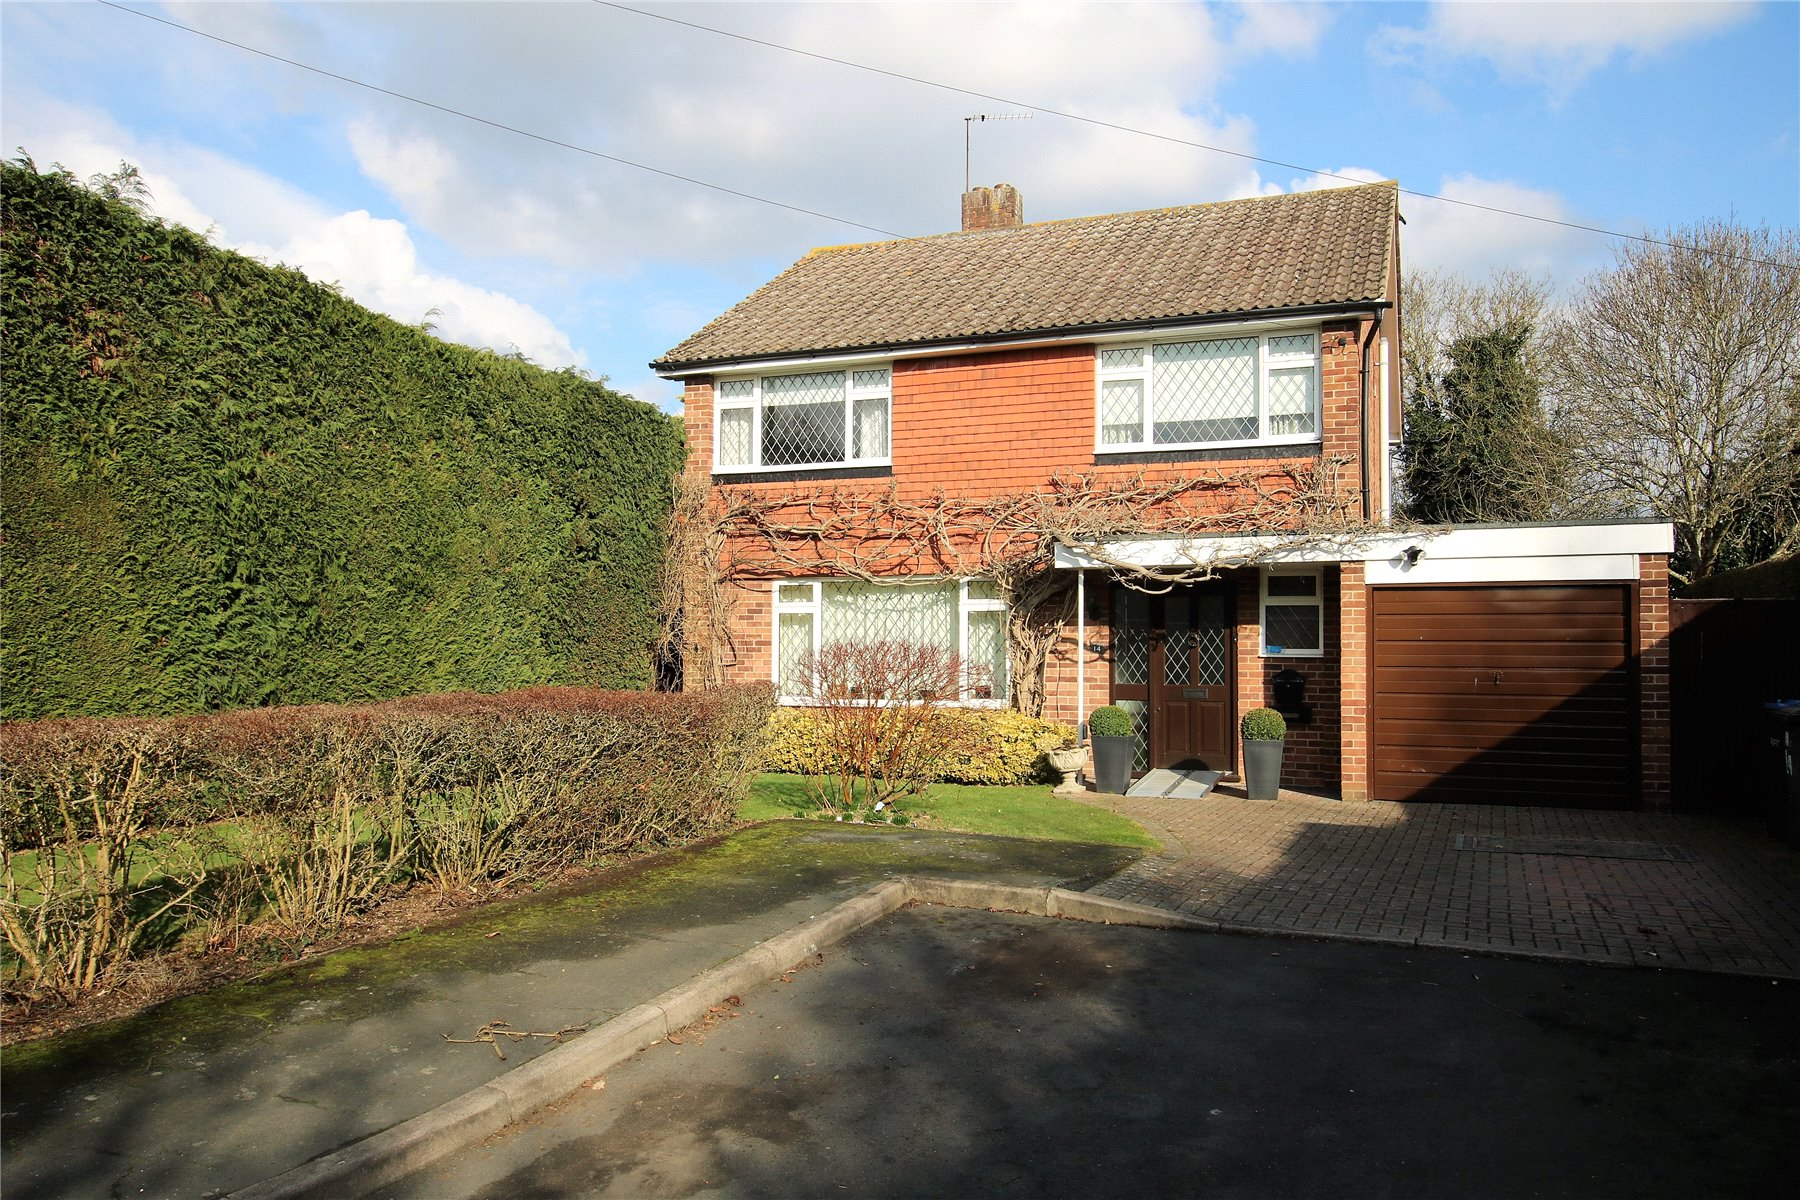 4 Bedrooms Detached House for sale in Fullmer Way, Woodham, Surrey, KT15